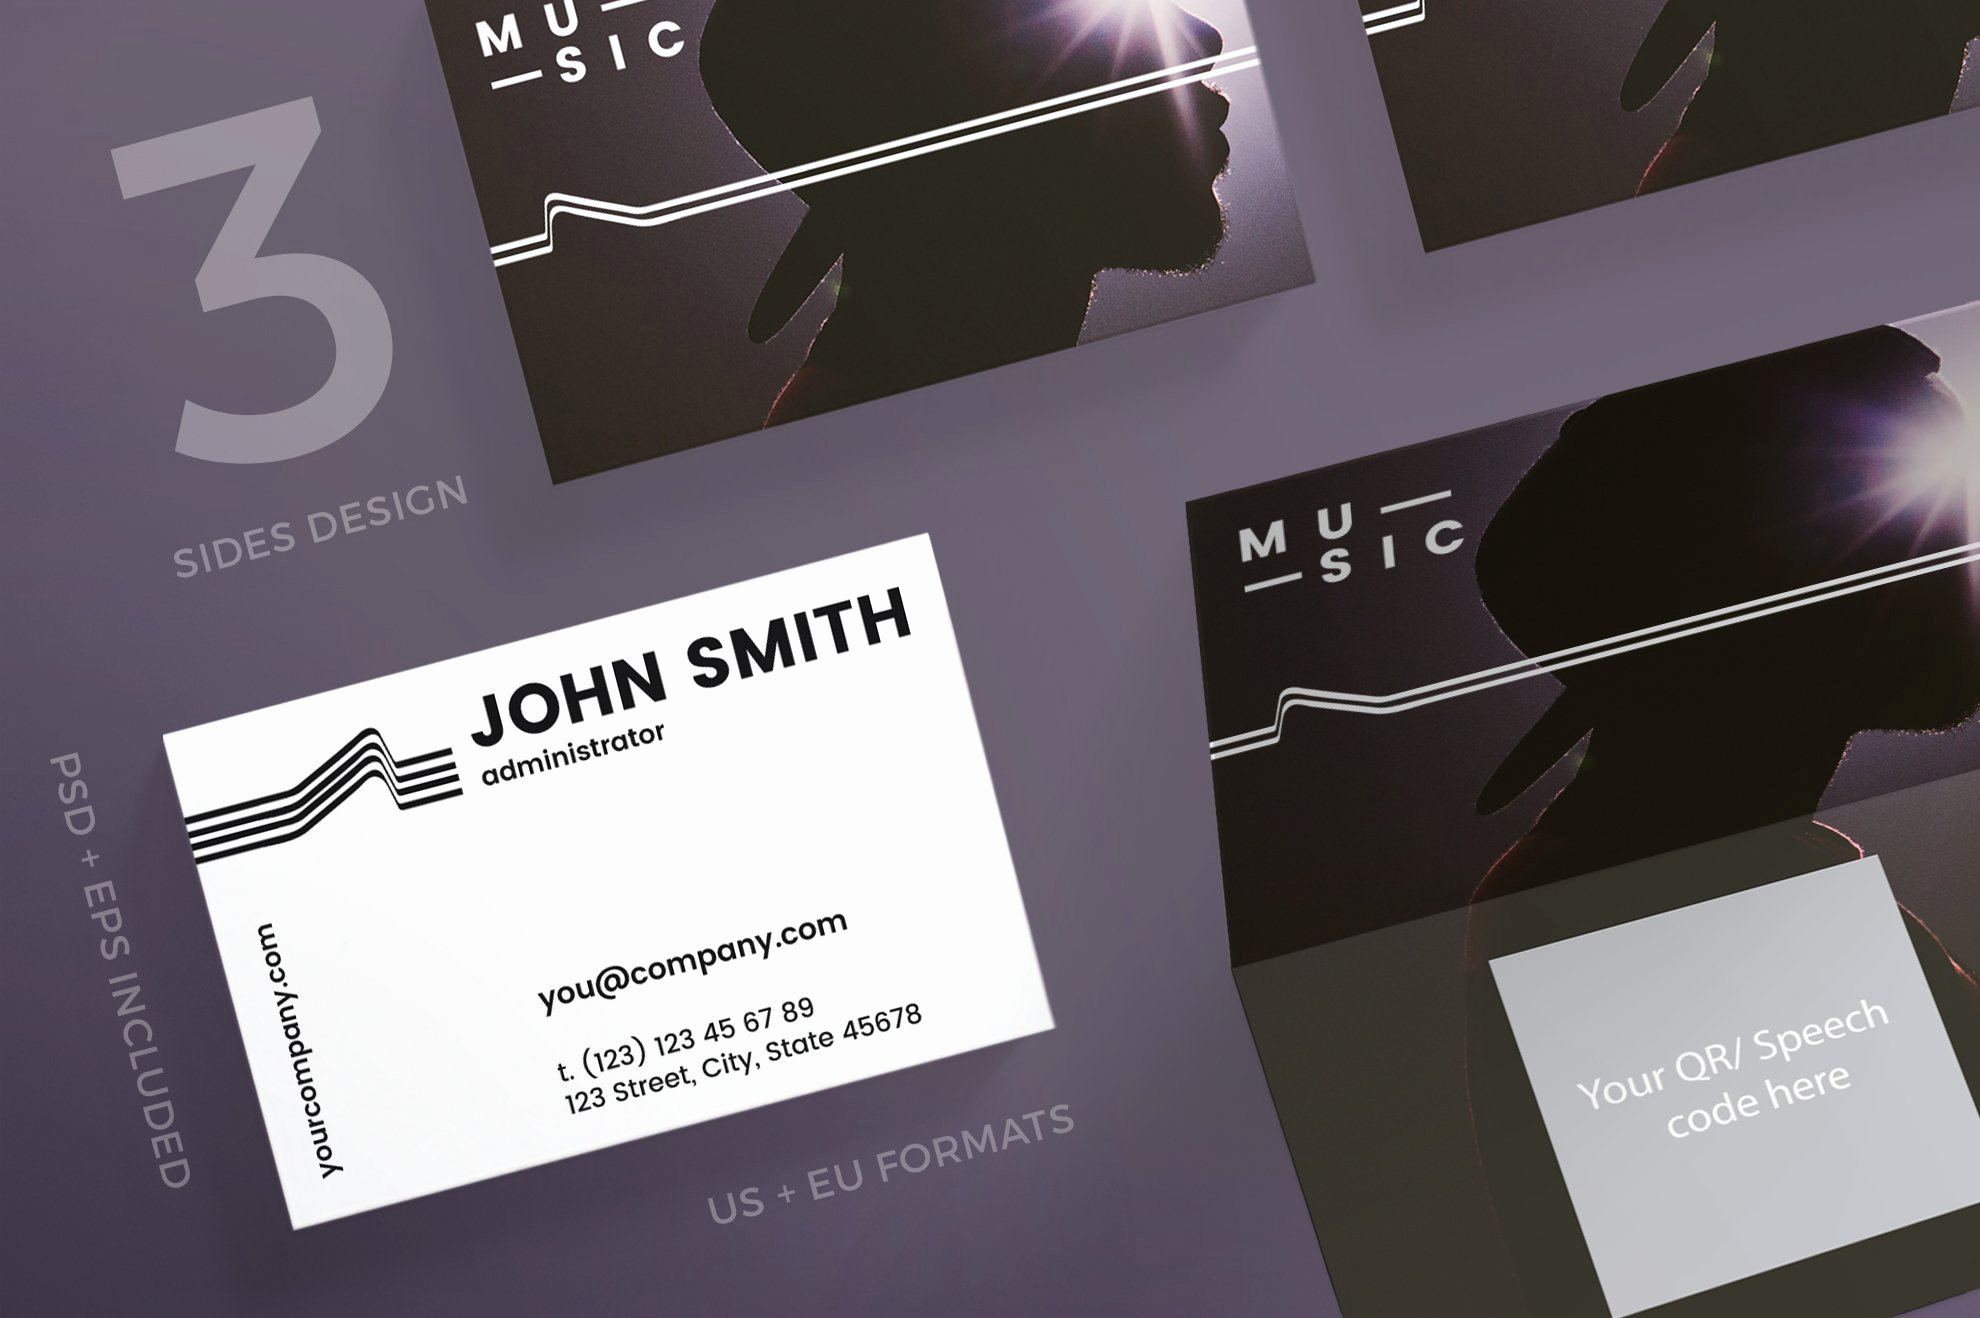 Music Business Cards Template Lovely Business Cards